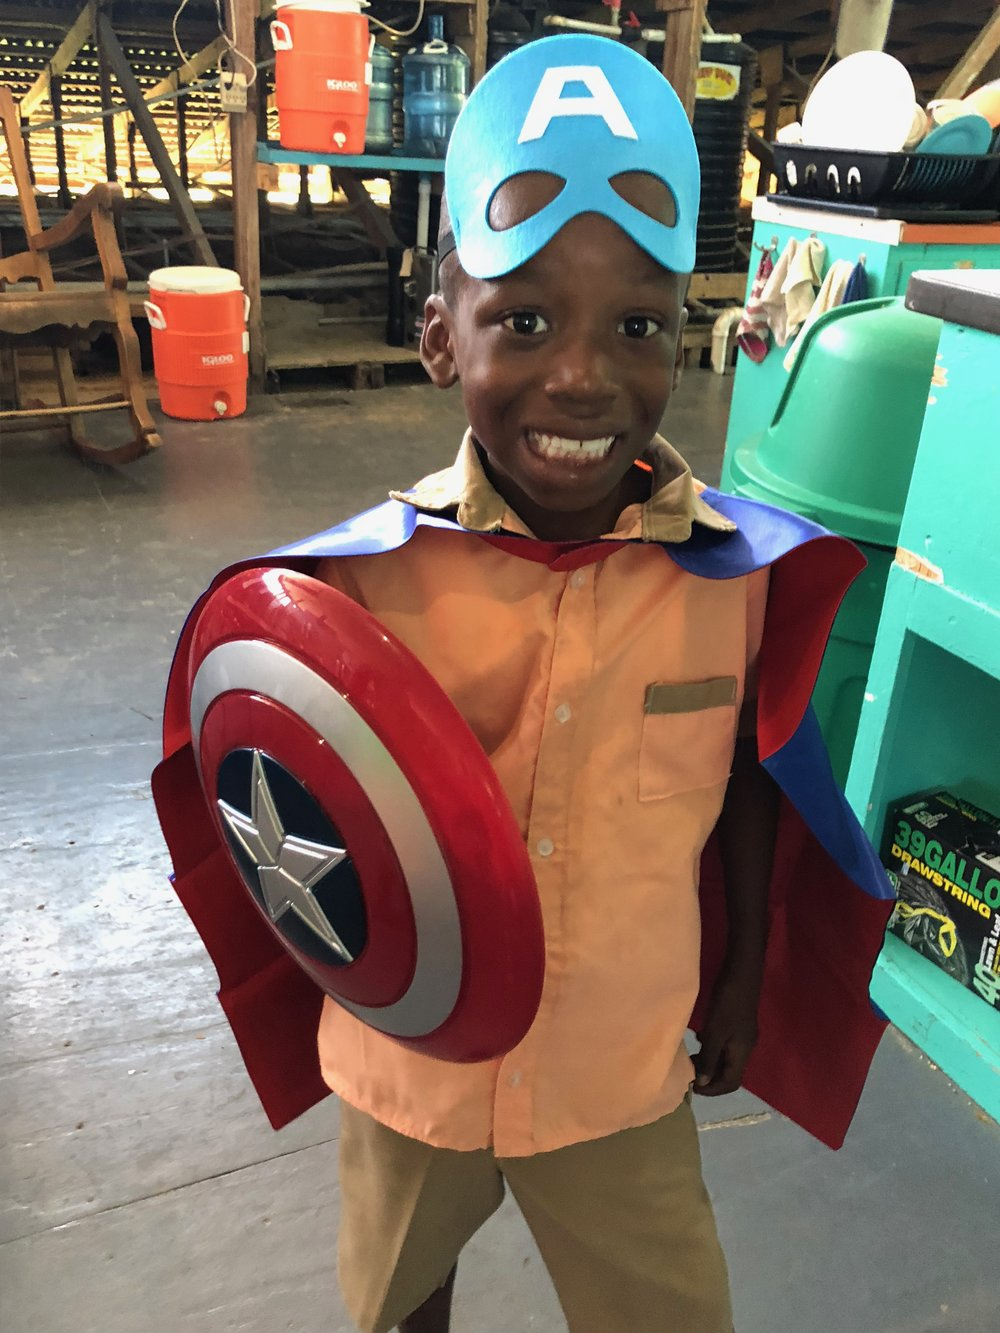 Luke's favorite superhero is Captain America….seems fitting:-)